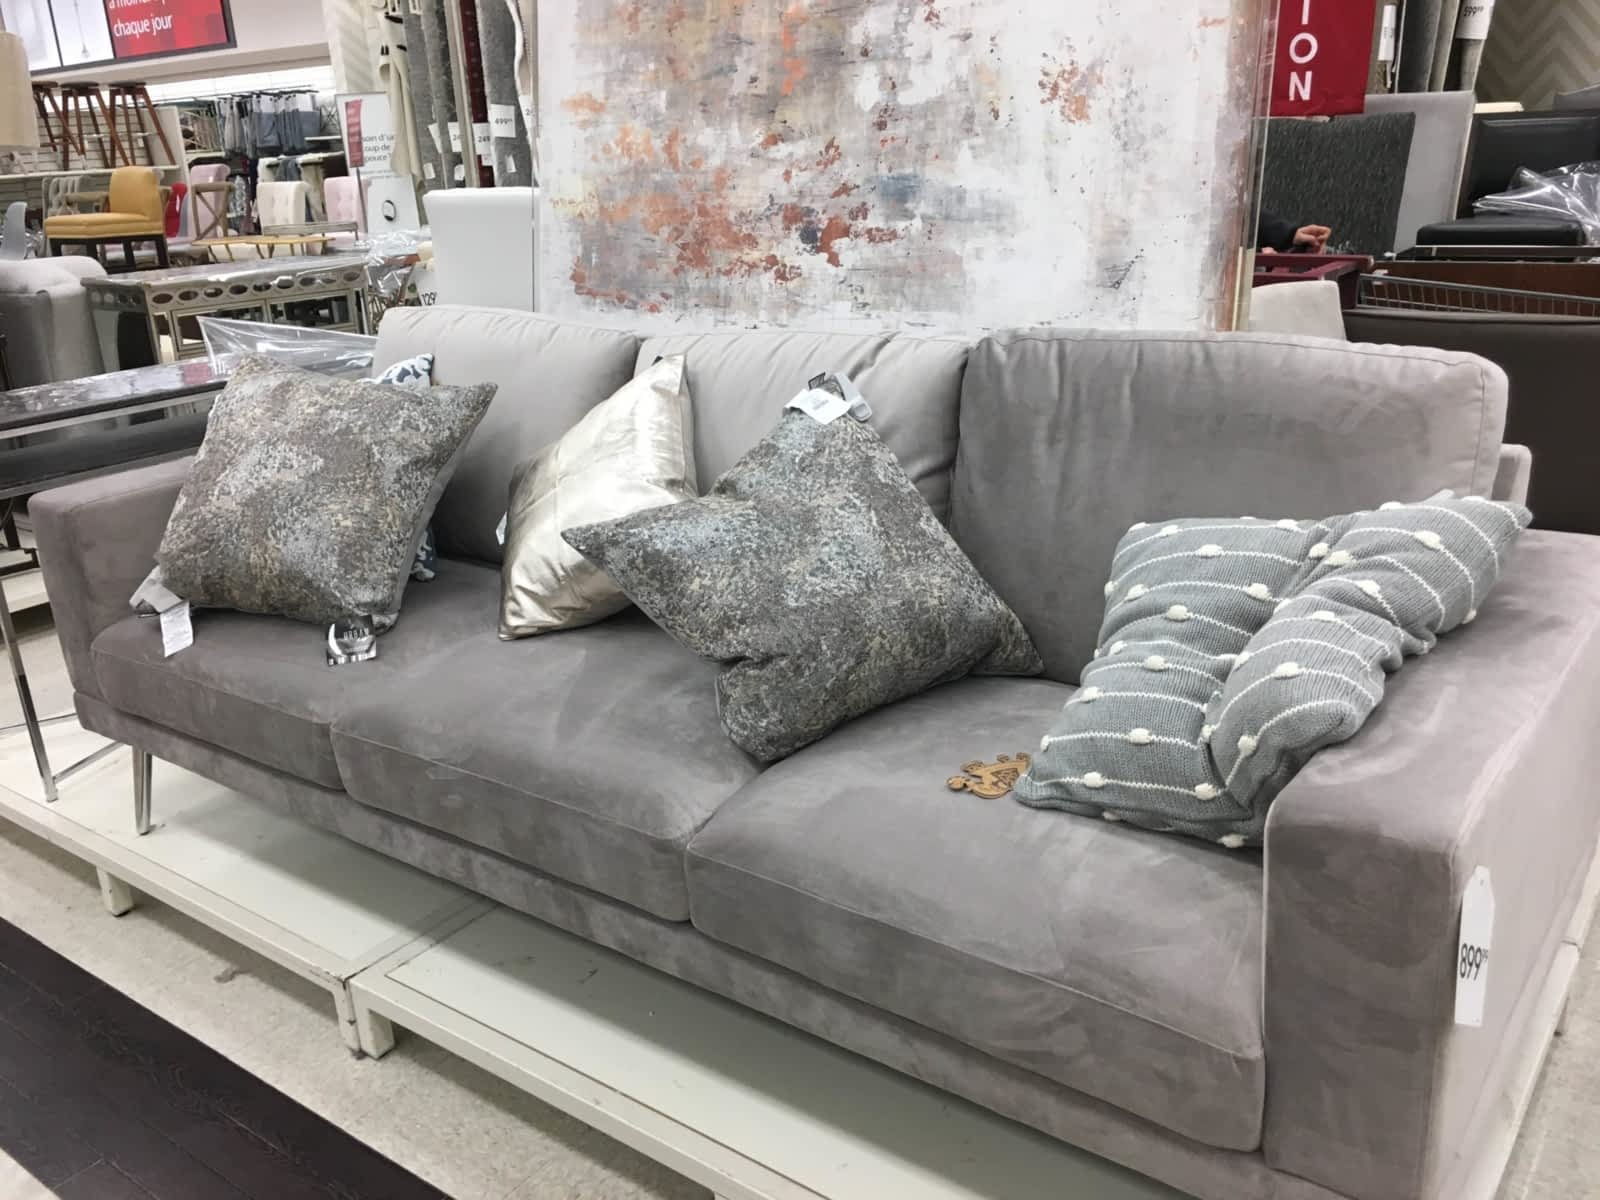 probably perfect awesome homesense grey armchair idea living room sets sofa covers other decor beds cushions throws full size adjustable hospital tray table small modern accent